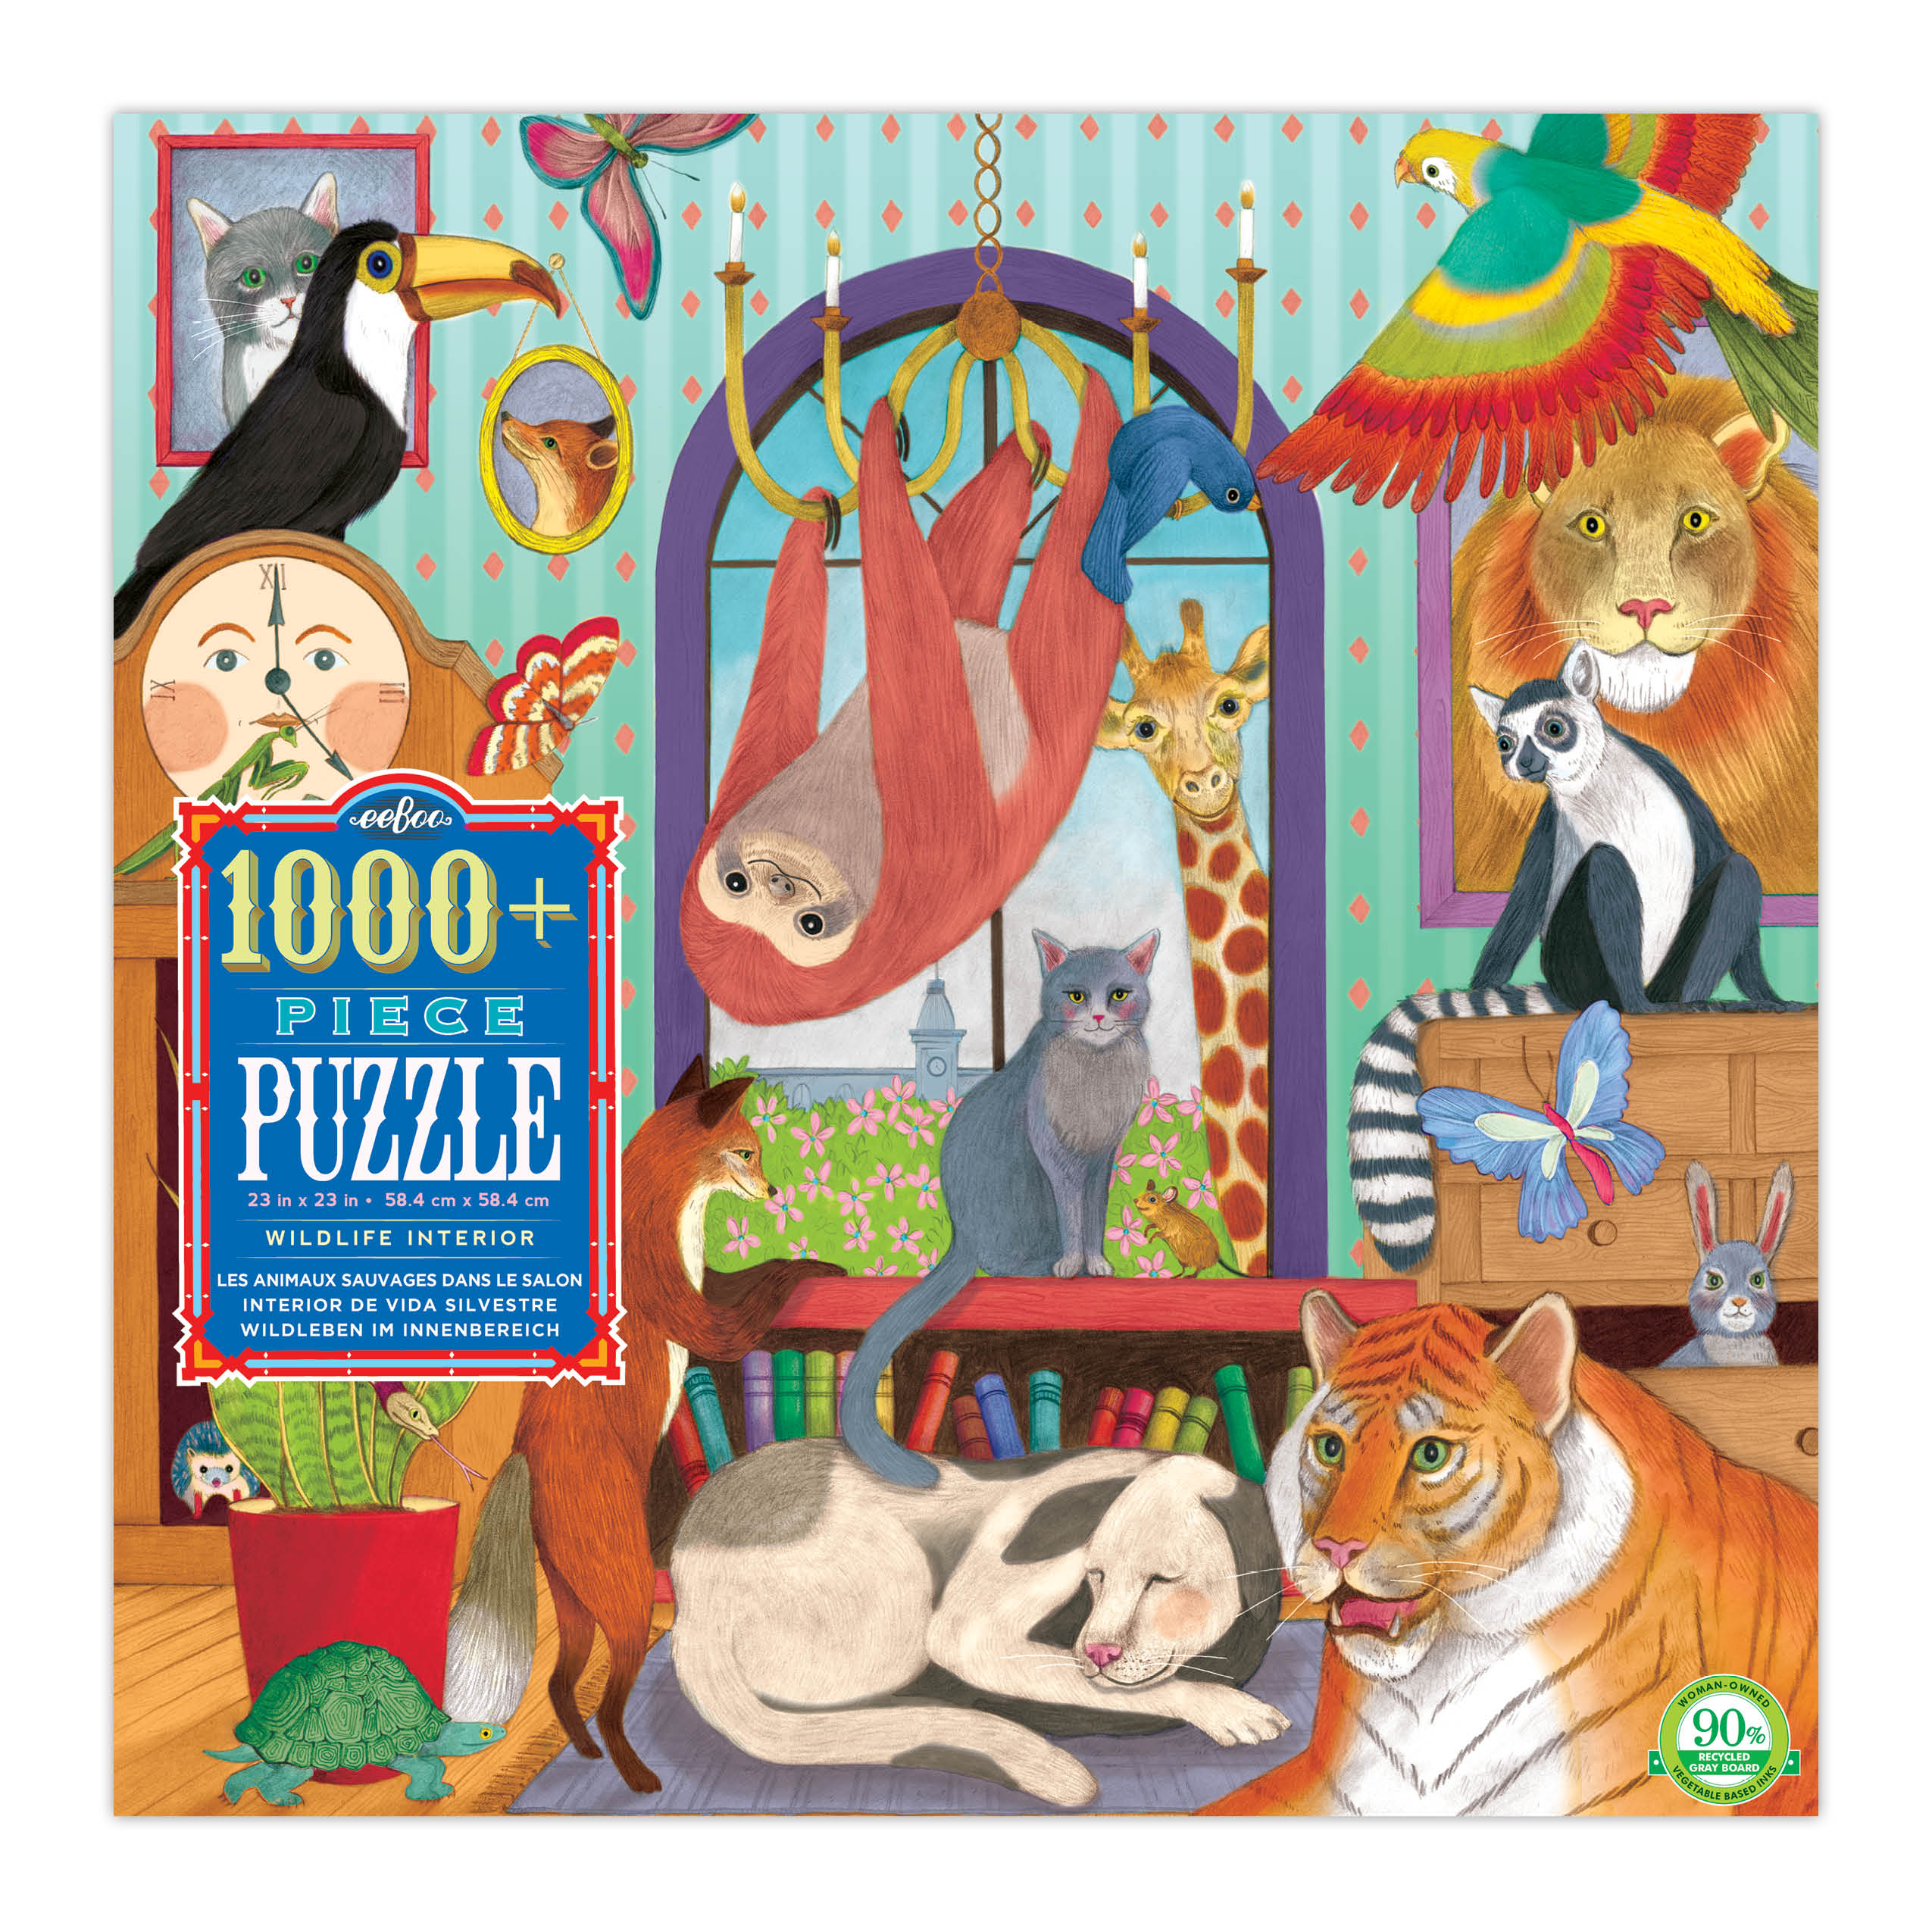 1008 Piece Wildlife Interior Jigsaw Puzzle